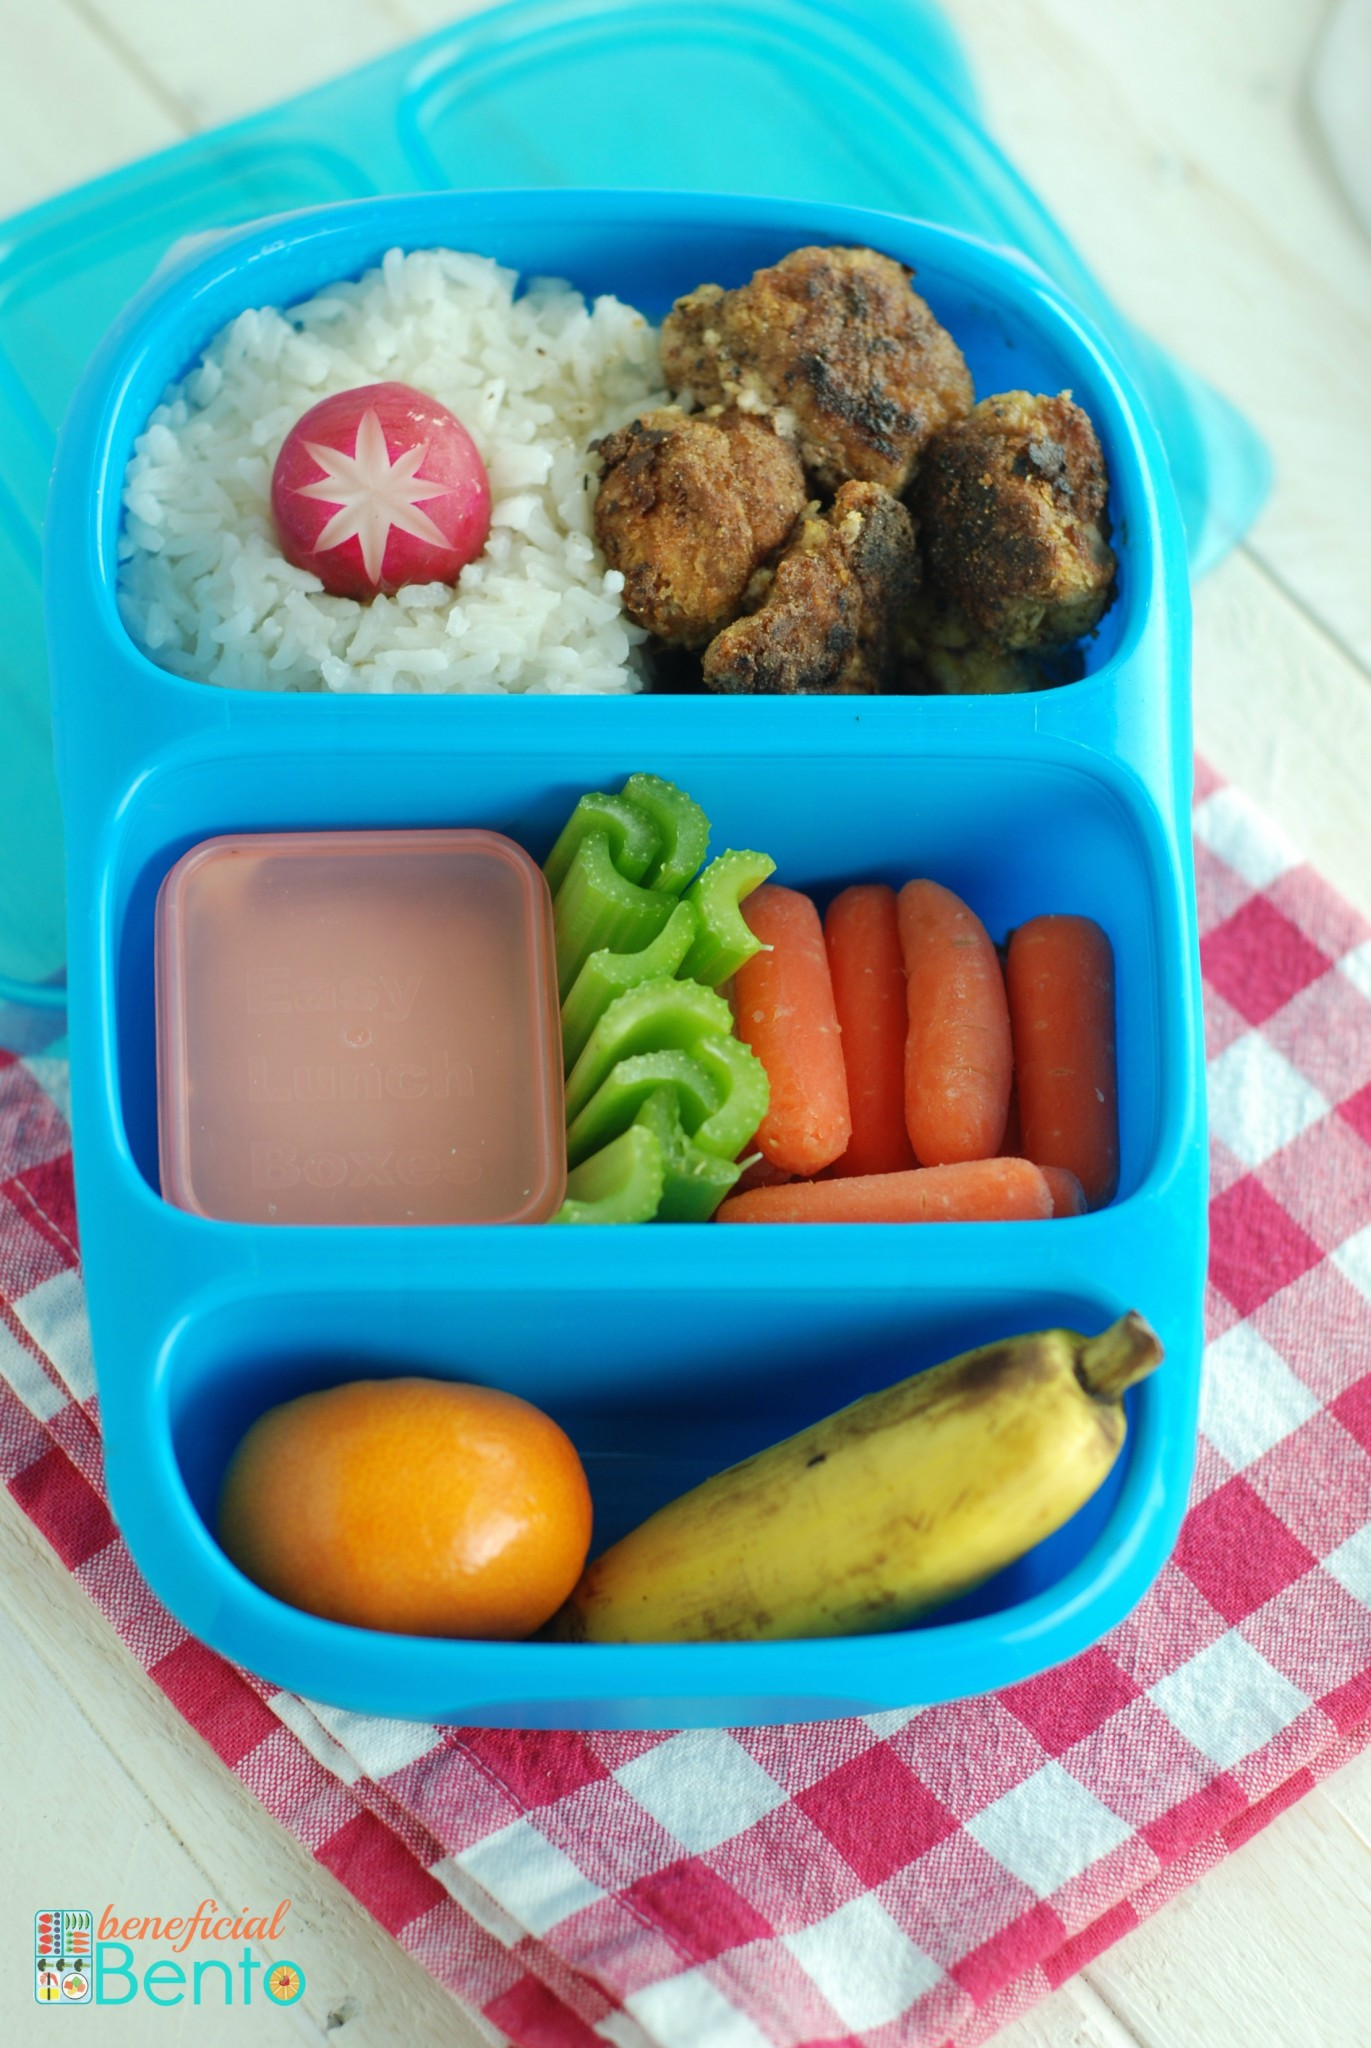 #goodbyn  bento boxes make ordinary food look cool